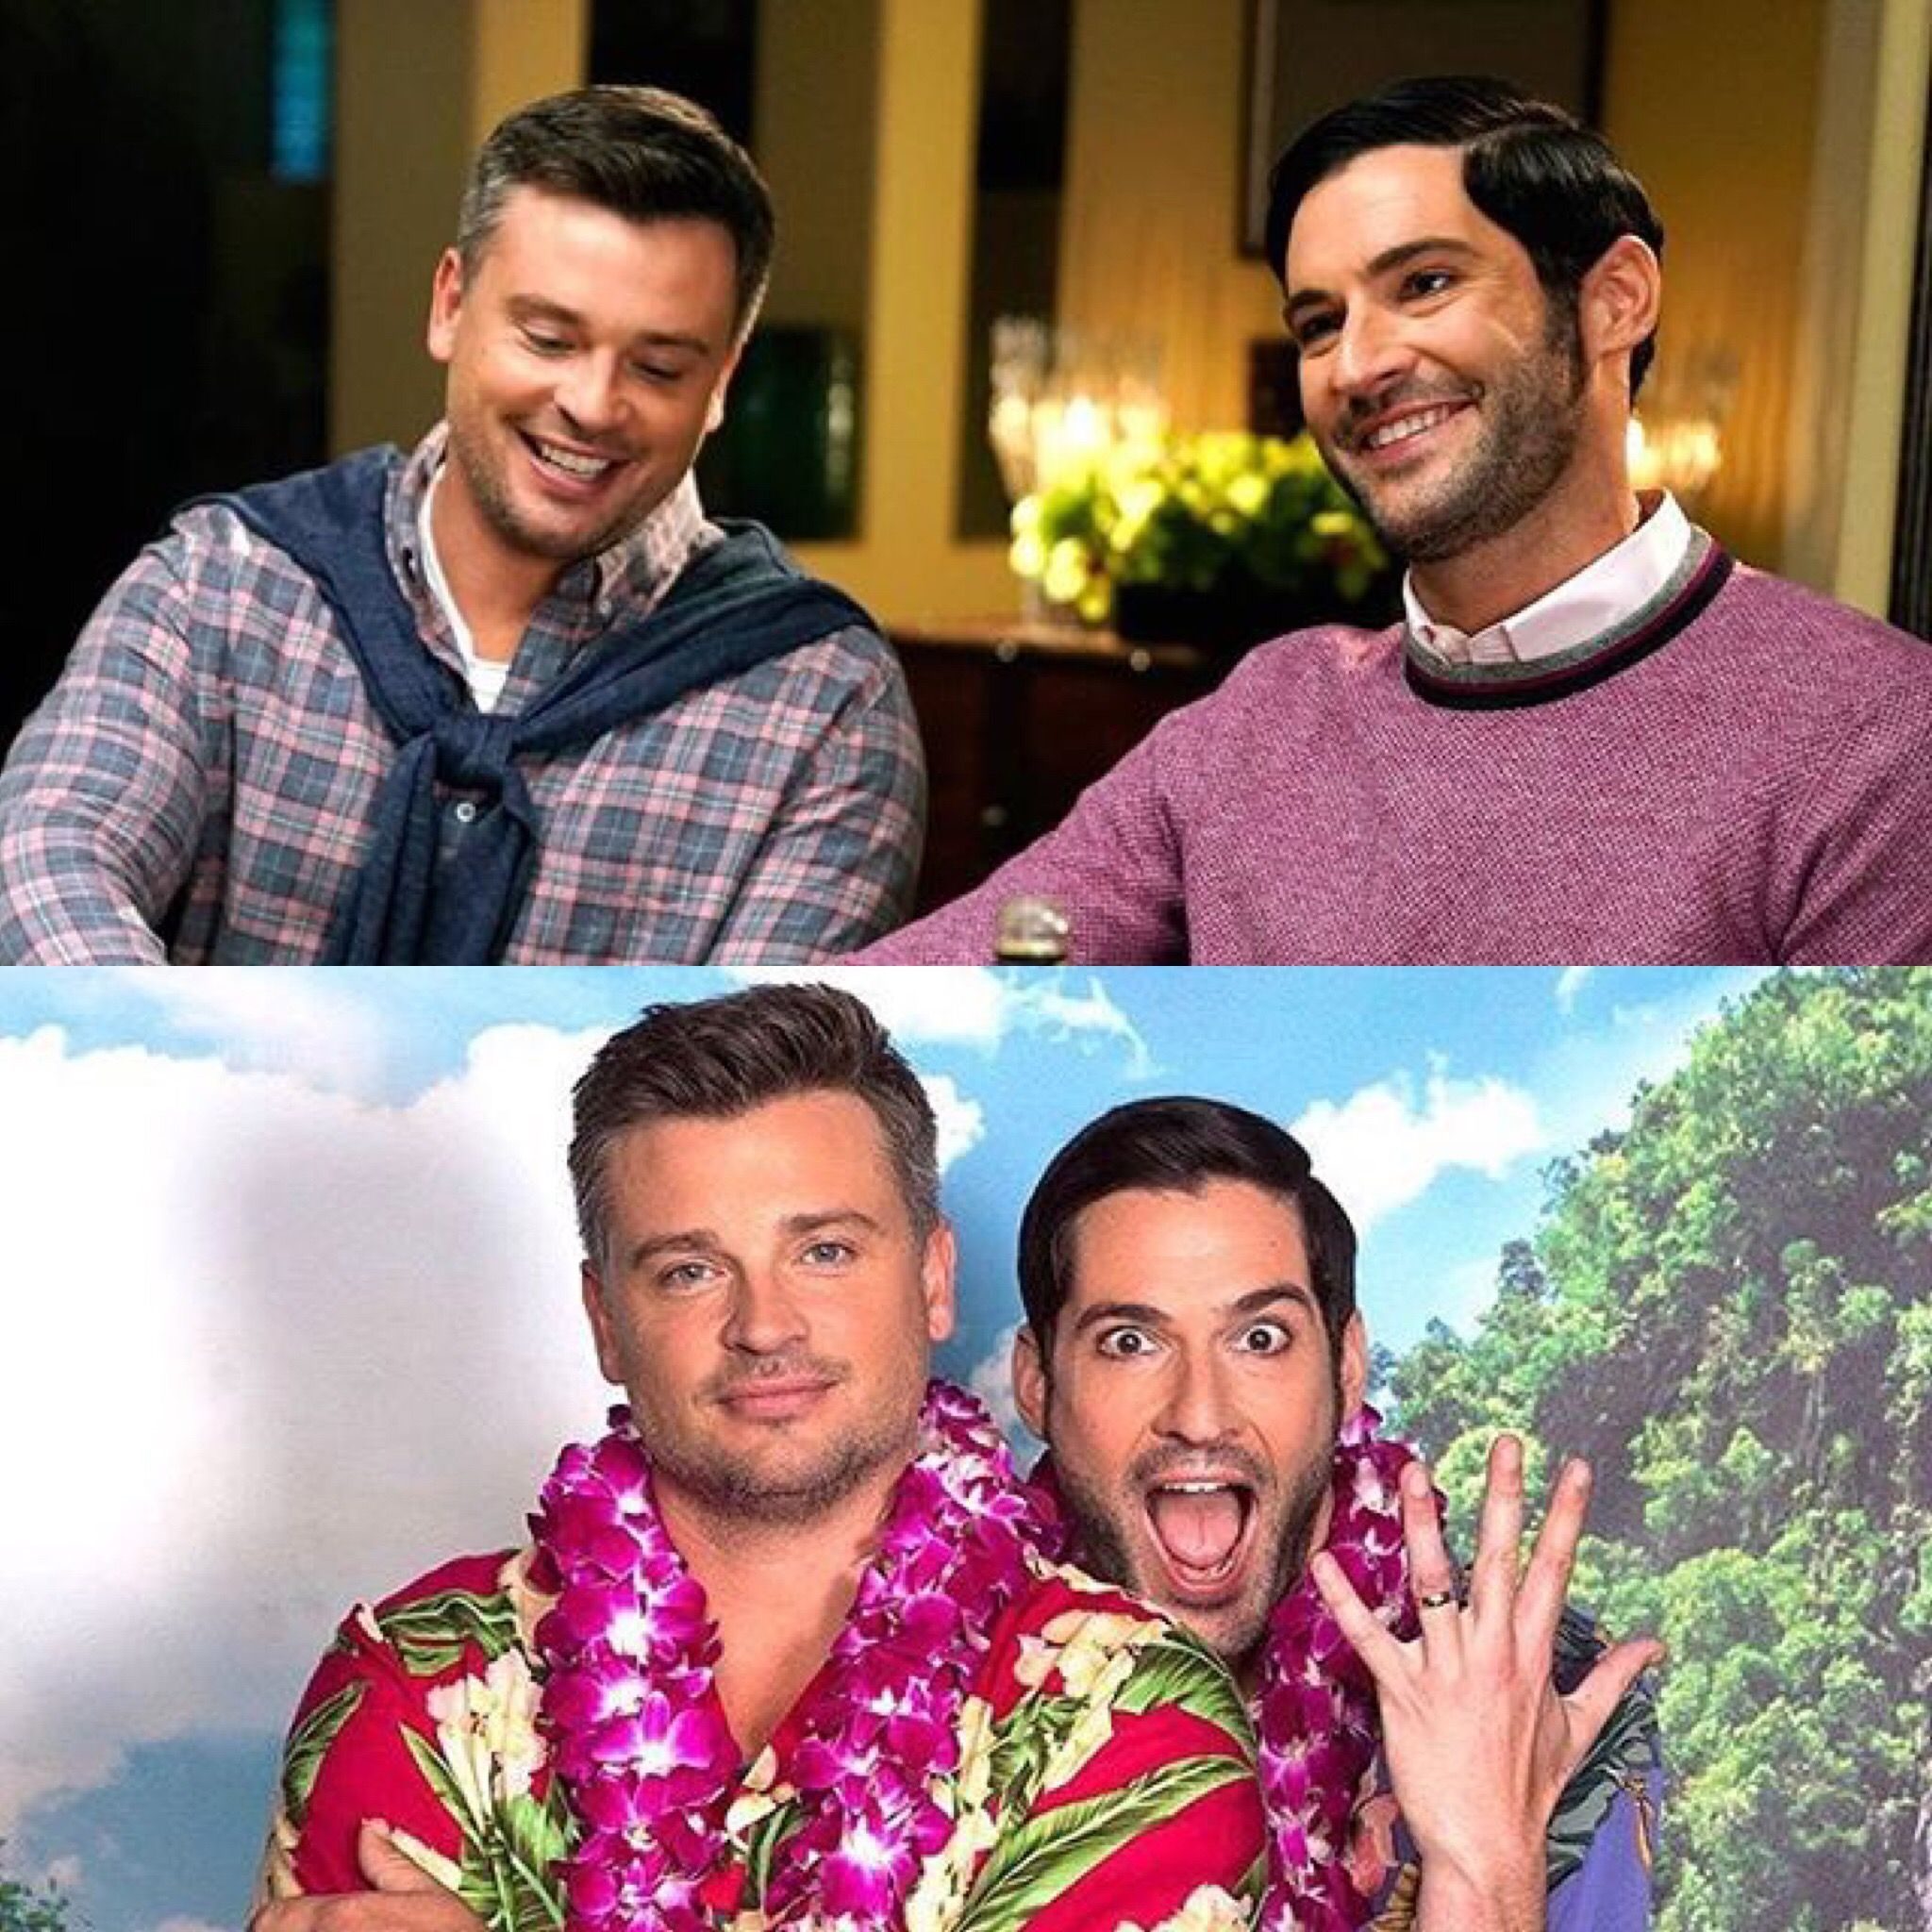 Tom Welling And Tom Ellis In A Photo From The 1/29/2018